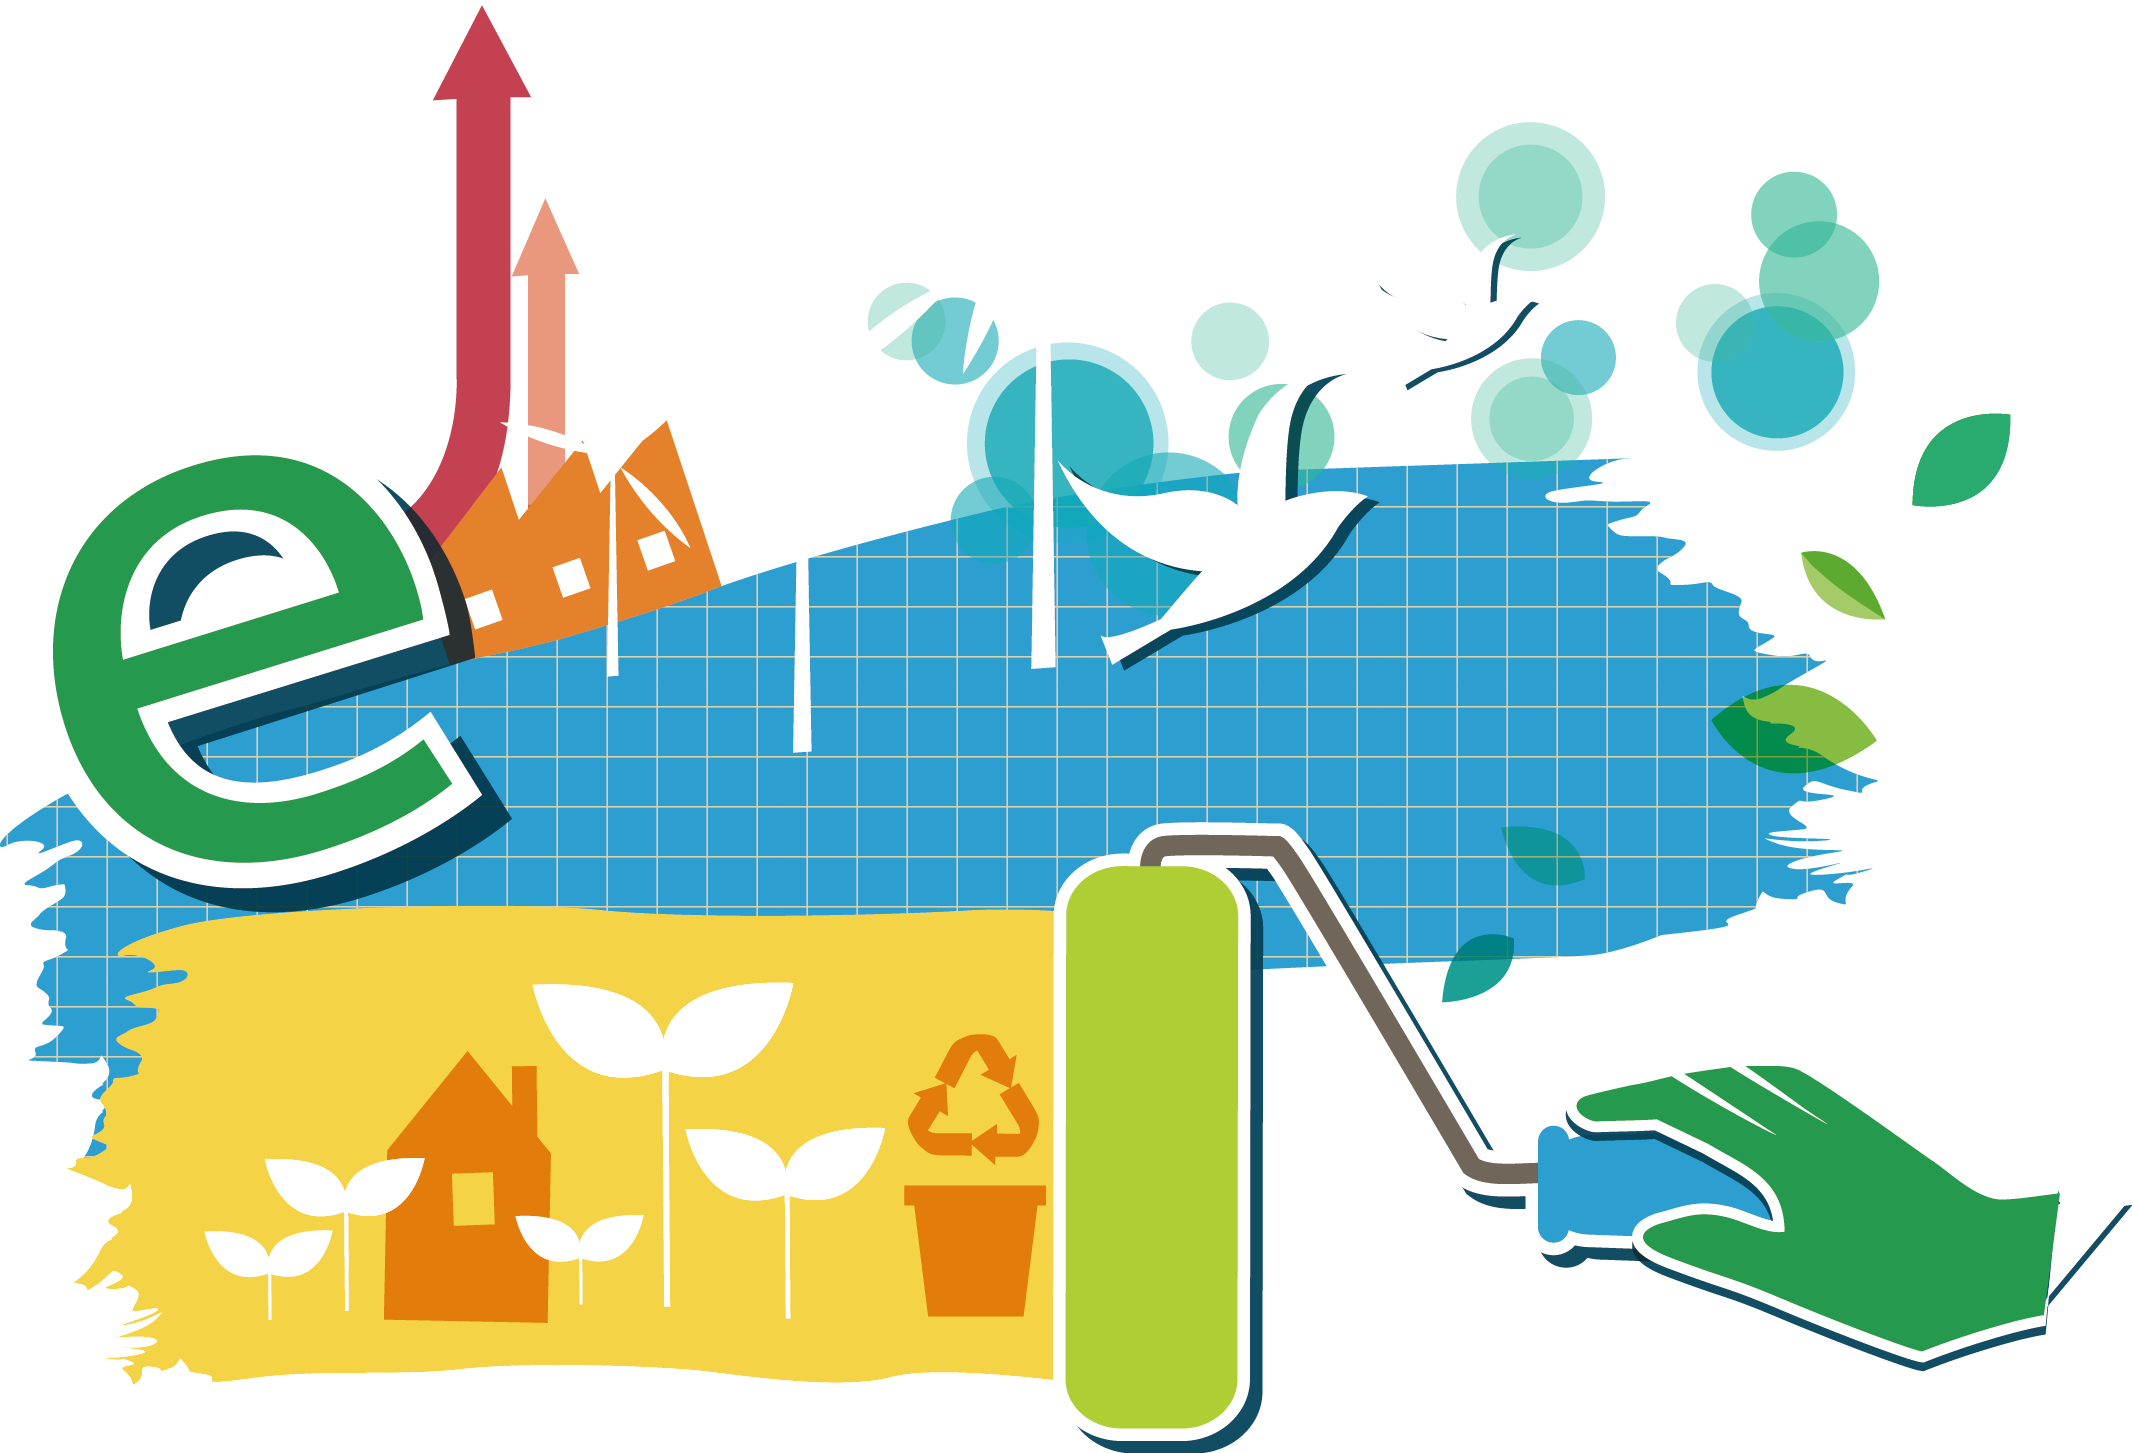 Environment clipart cleaning environment. Natural ecology icon clean